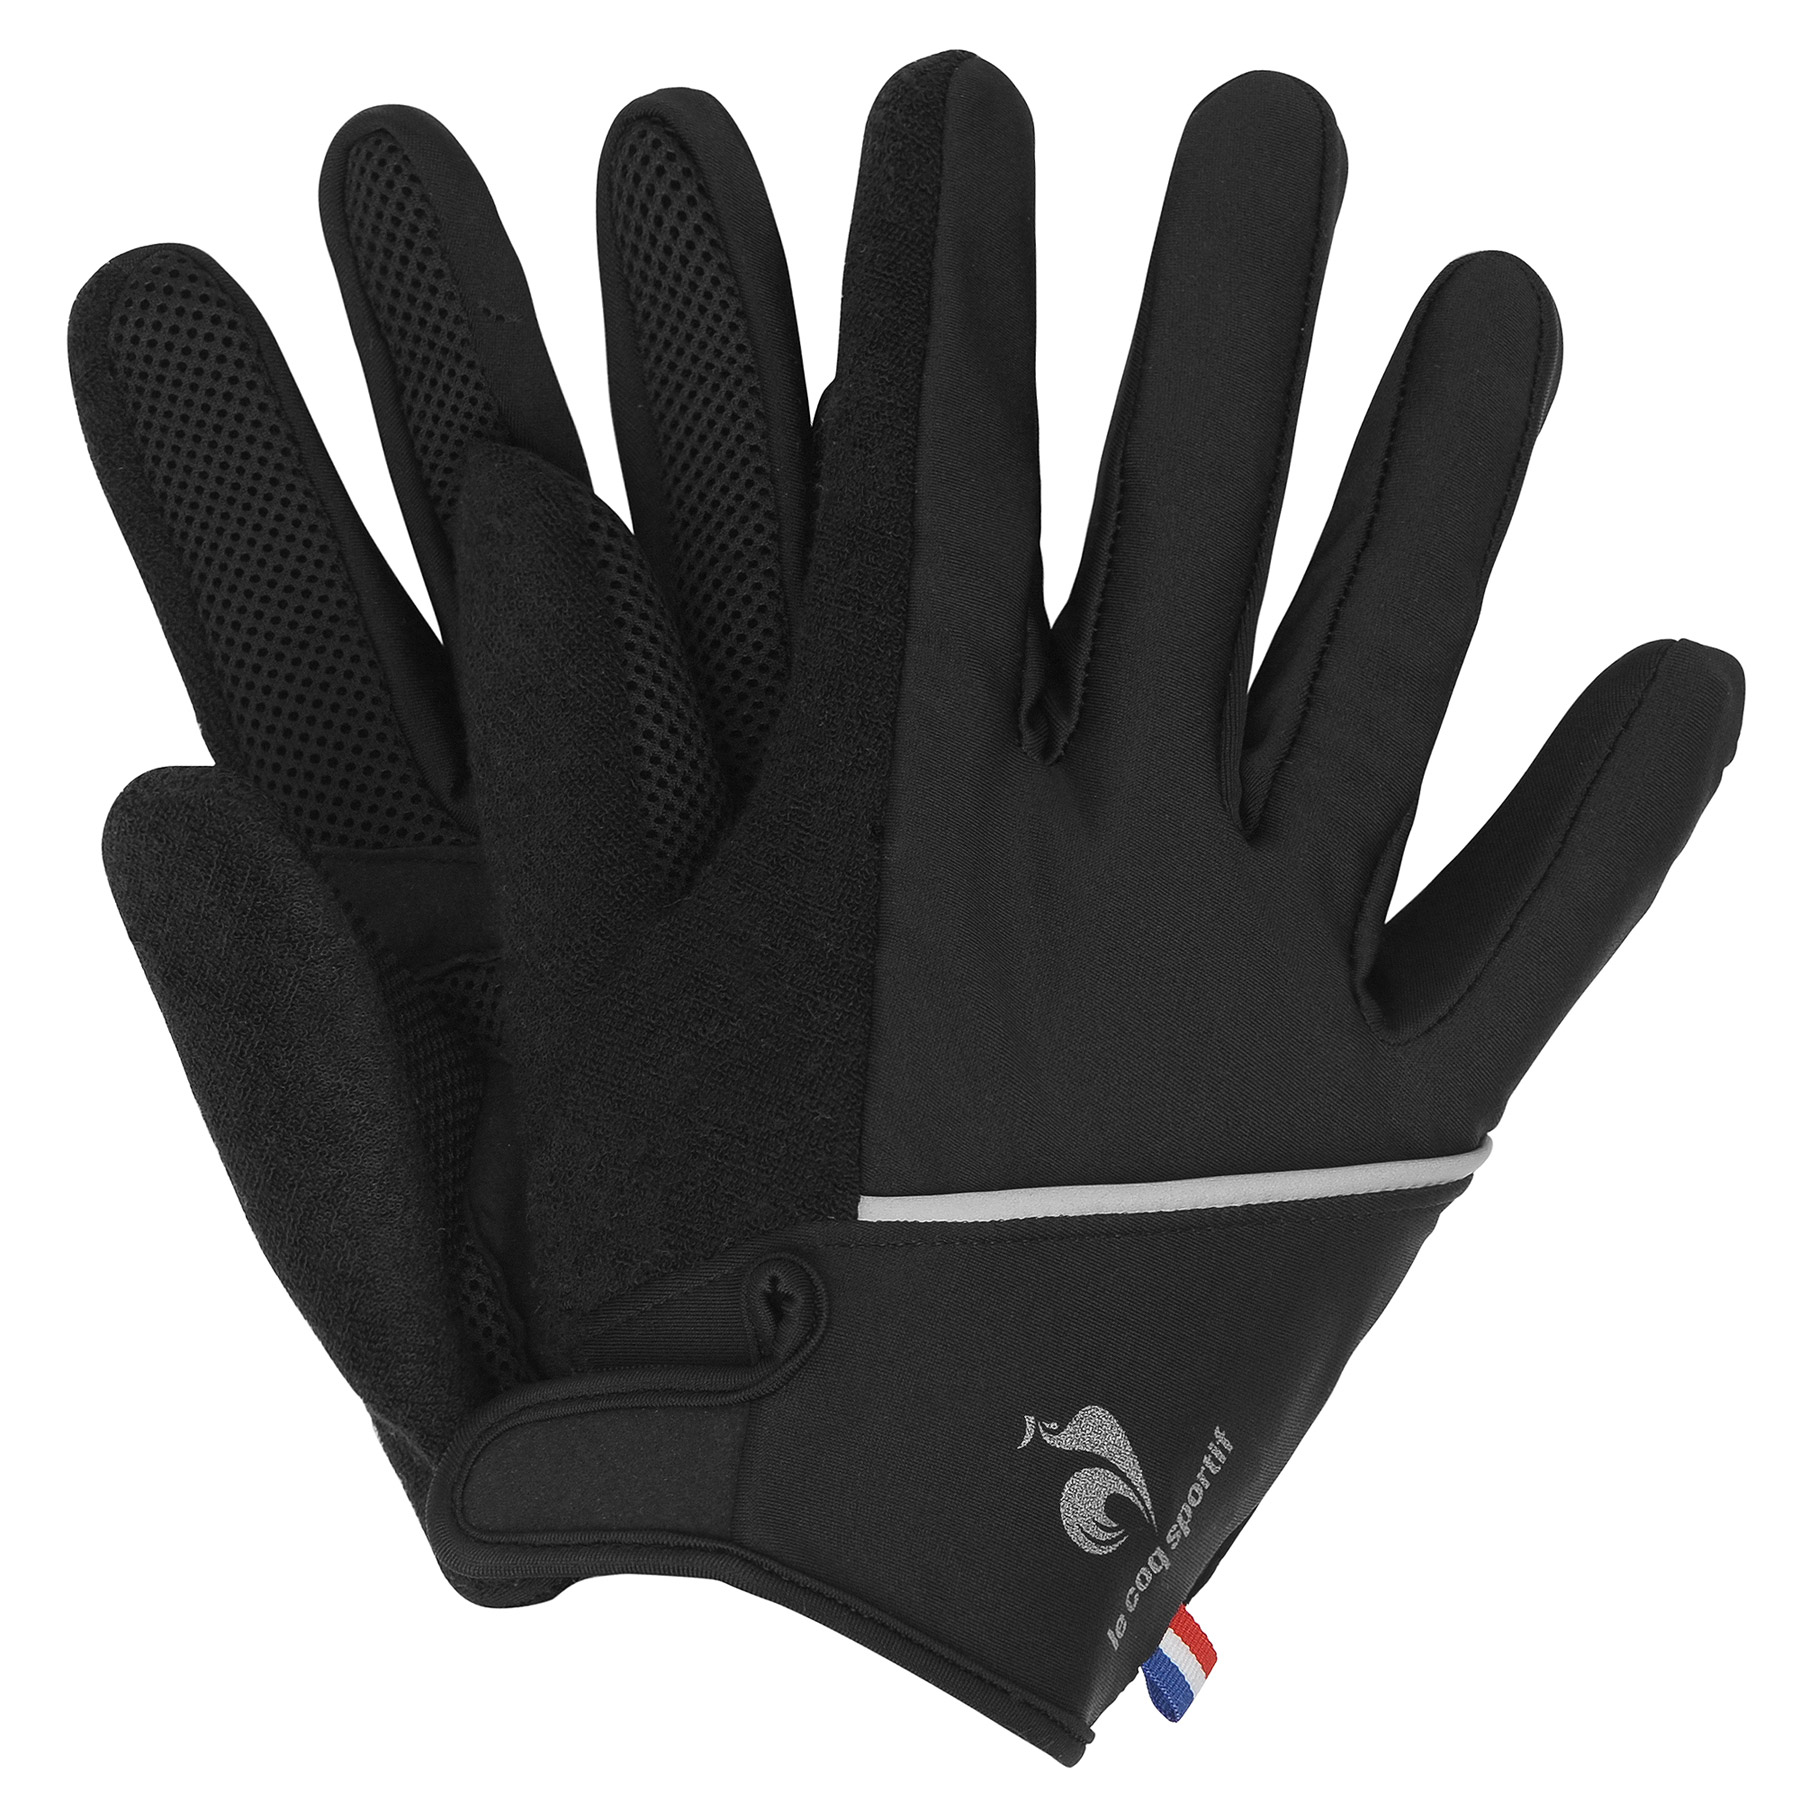 Le Coq Sportif Performance Resson Gloves